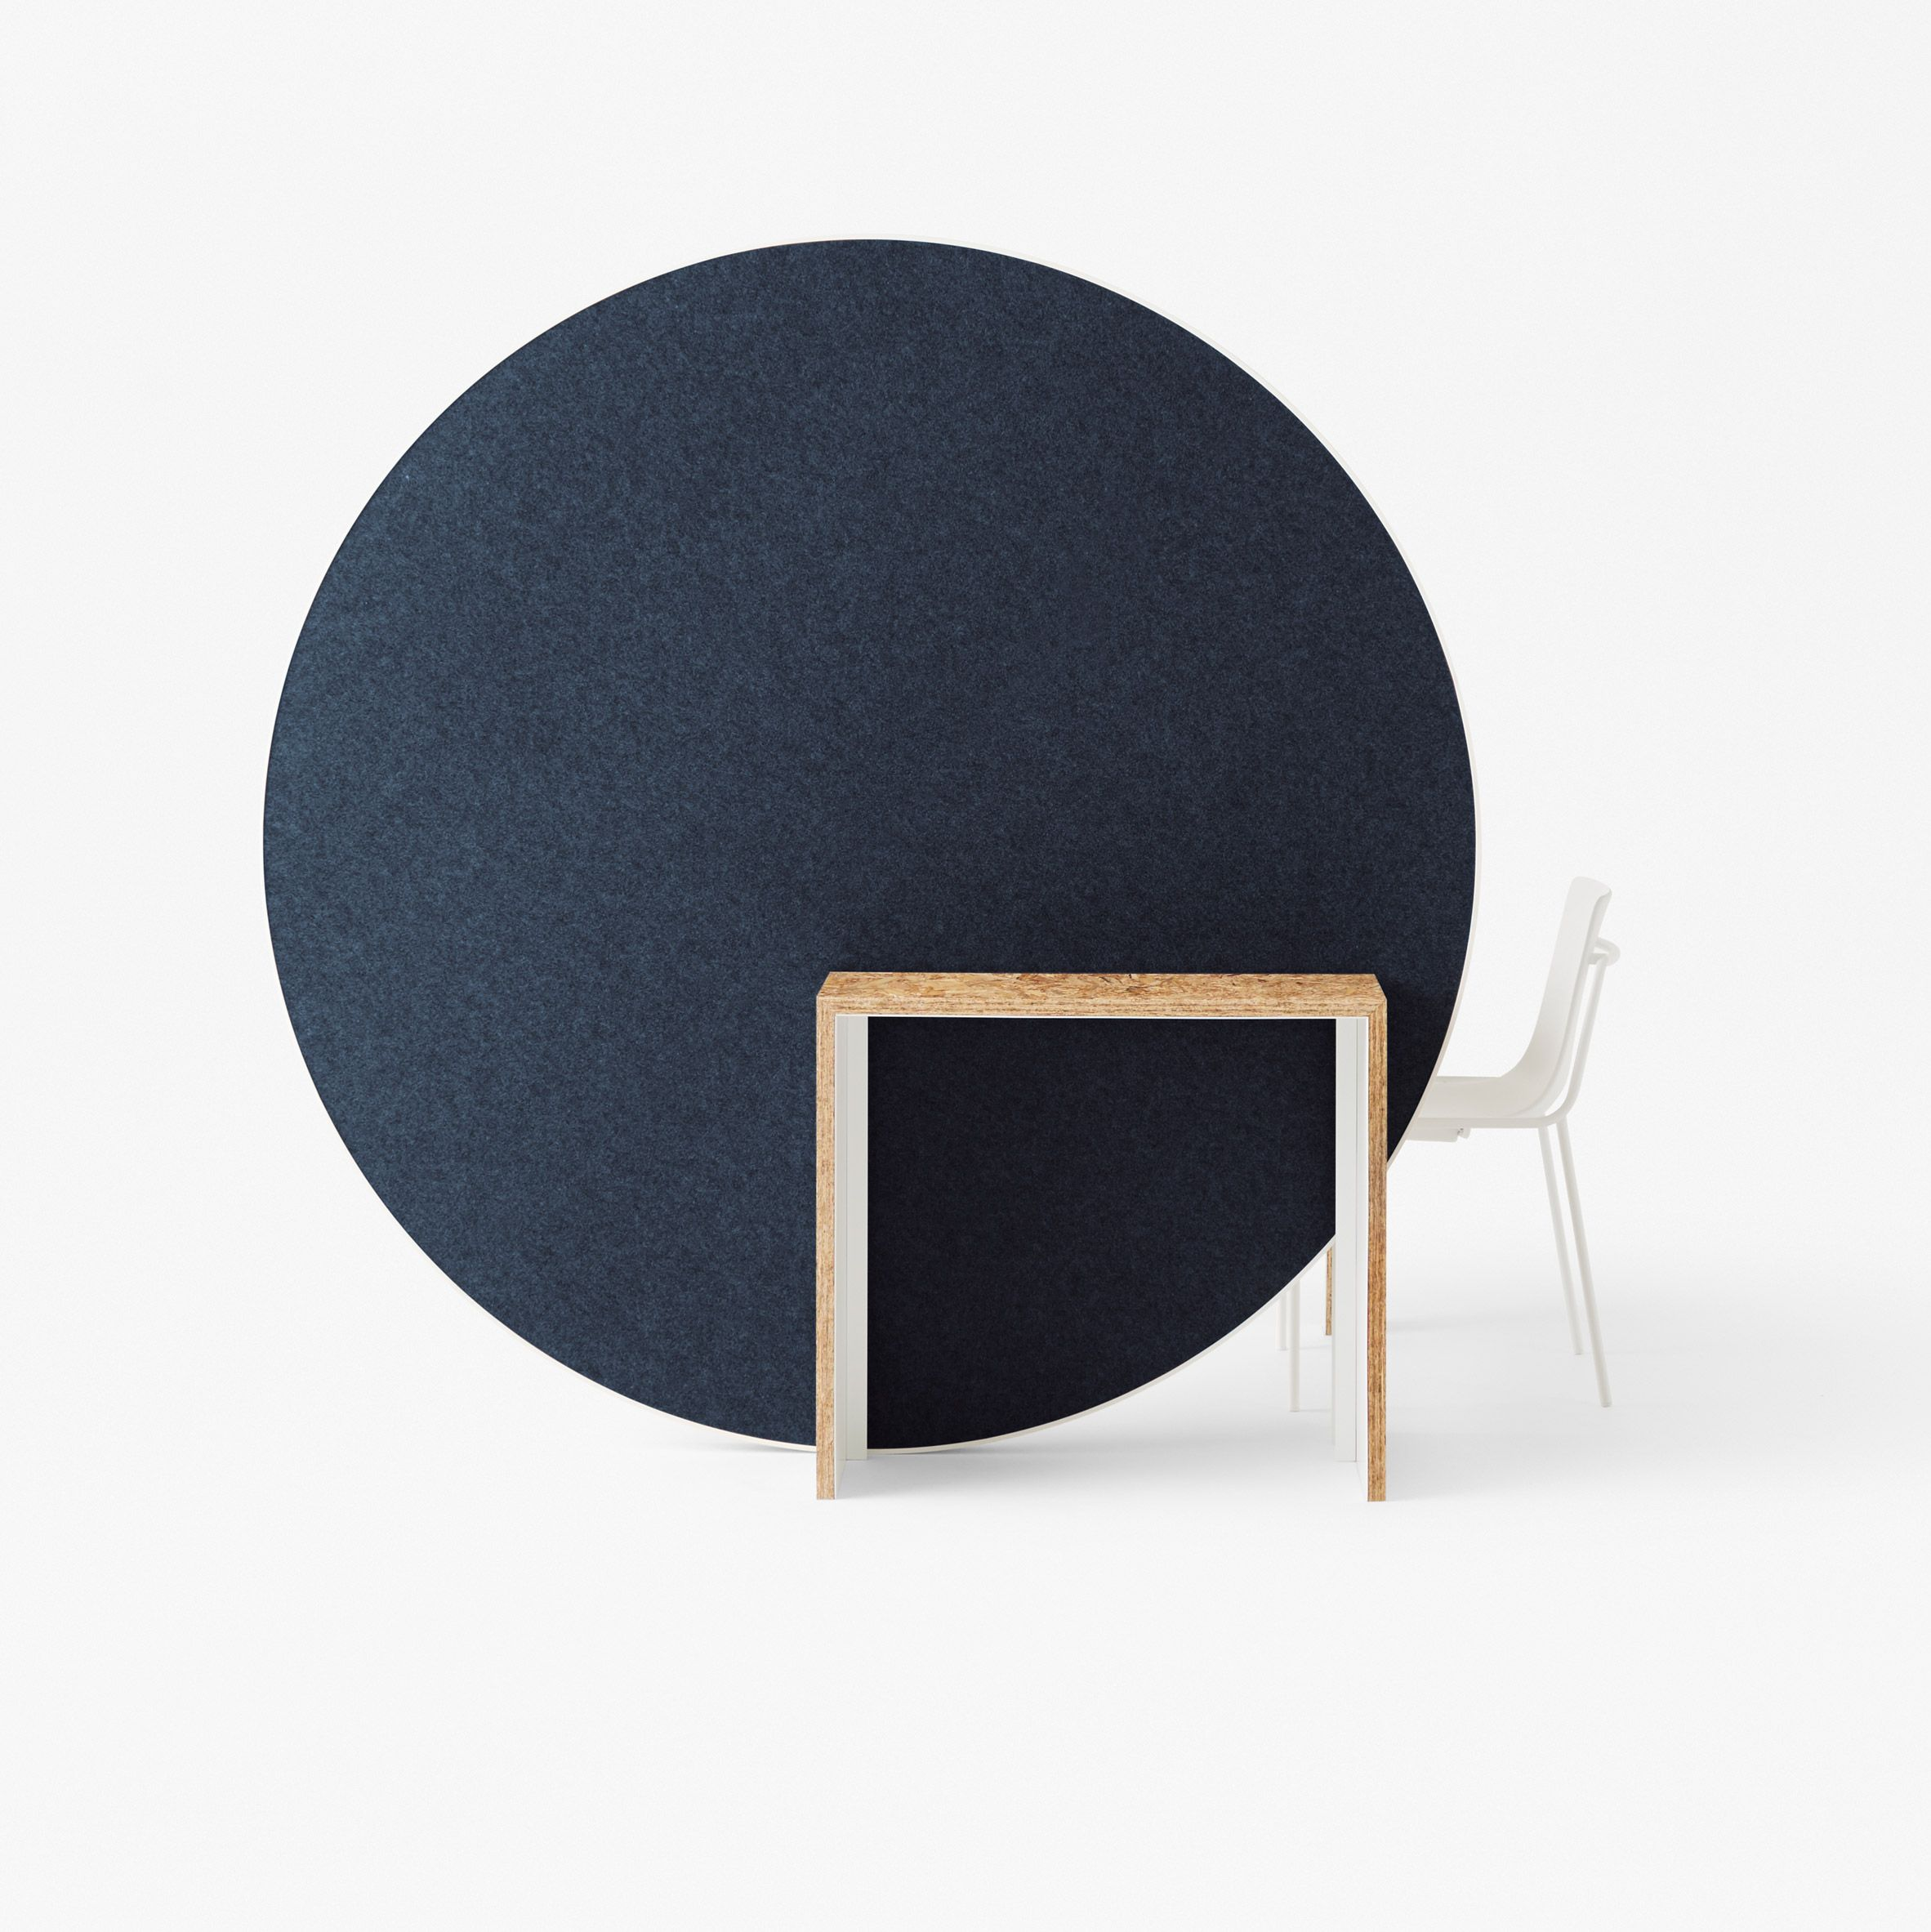 japanese office furniture. Japanese Design Studio Nendo Has Created An Installation Of Circular Office Furniture That Can Be Wheeled